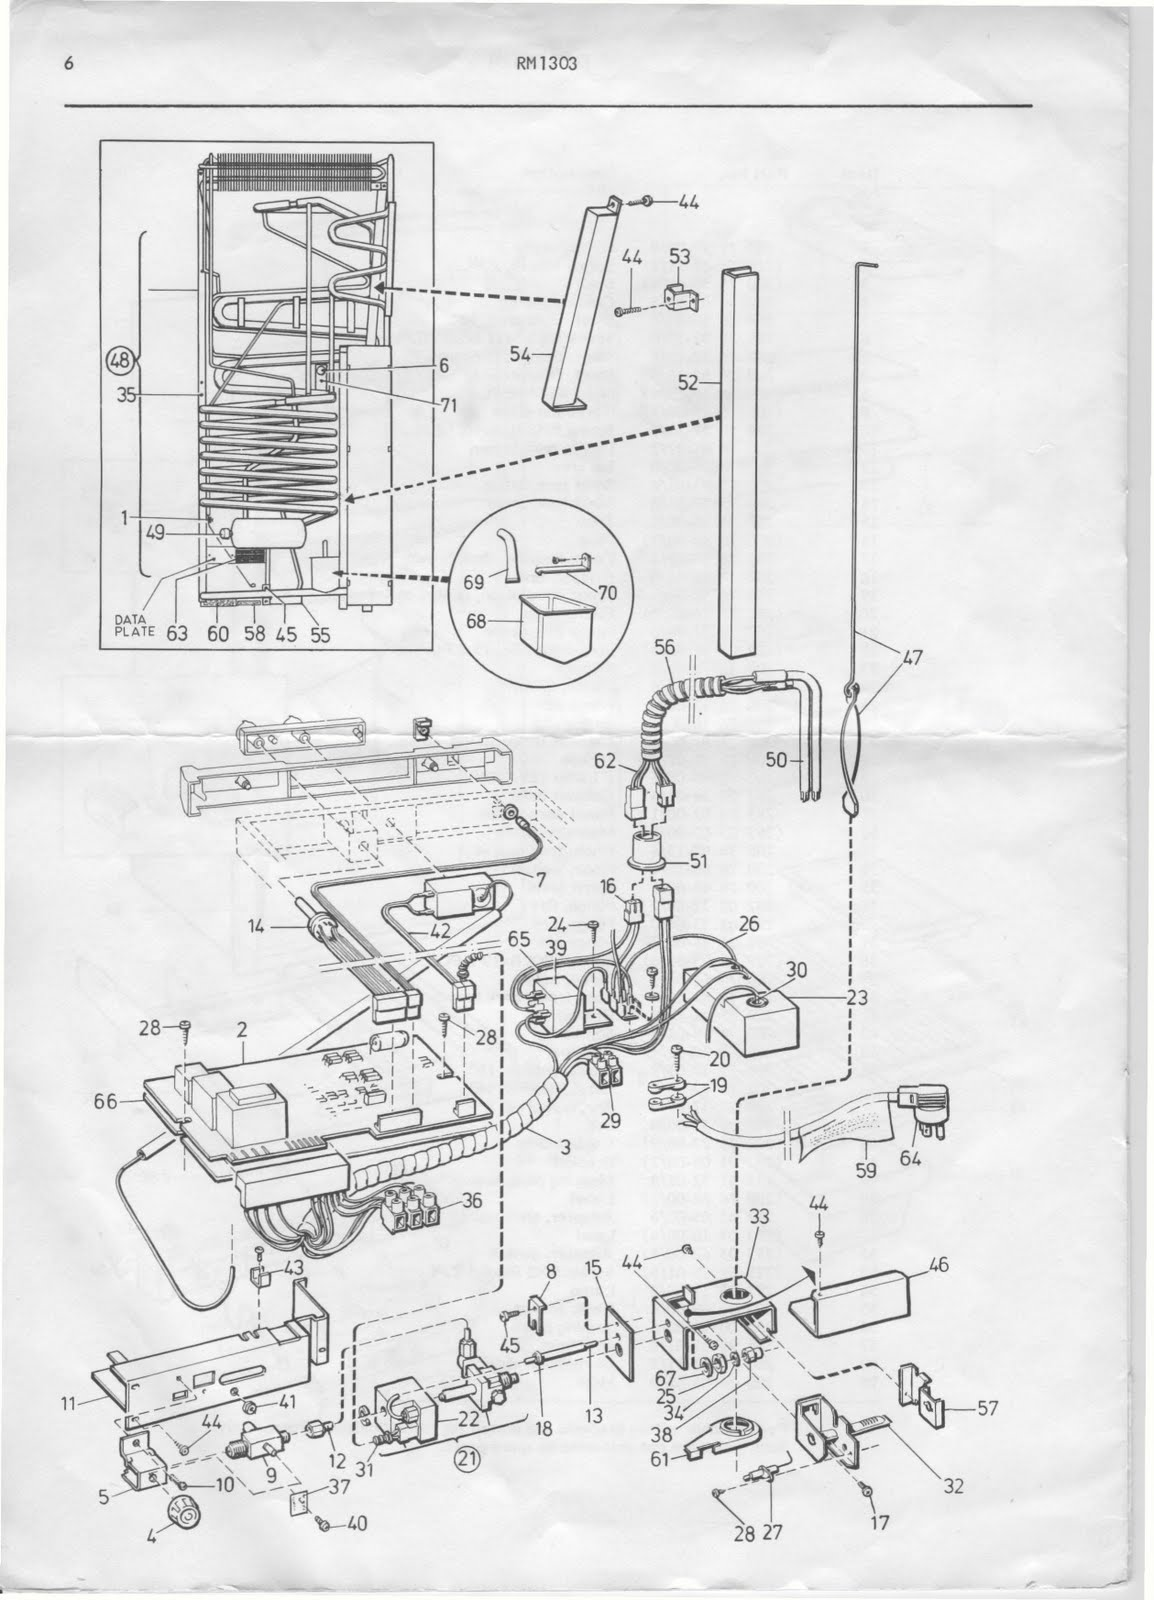 Rv Toilet Pressure Switch Schematic, Rv, Free Engine Image